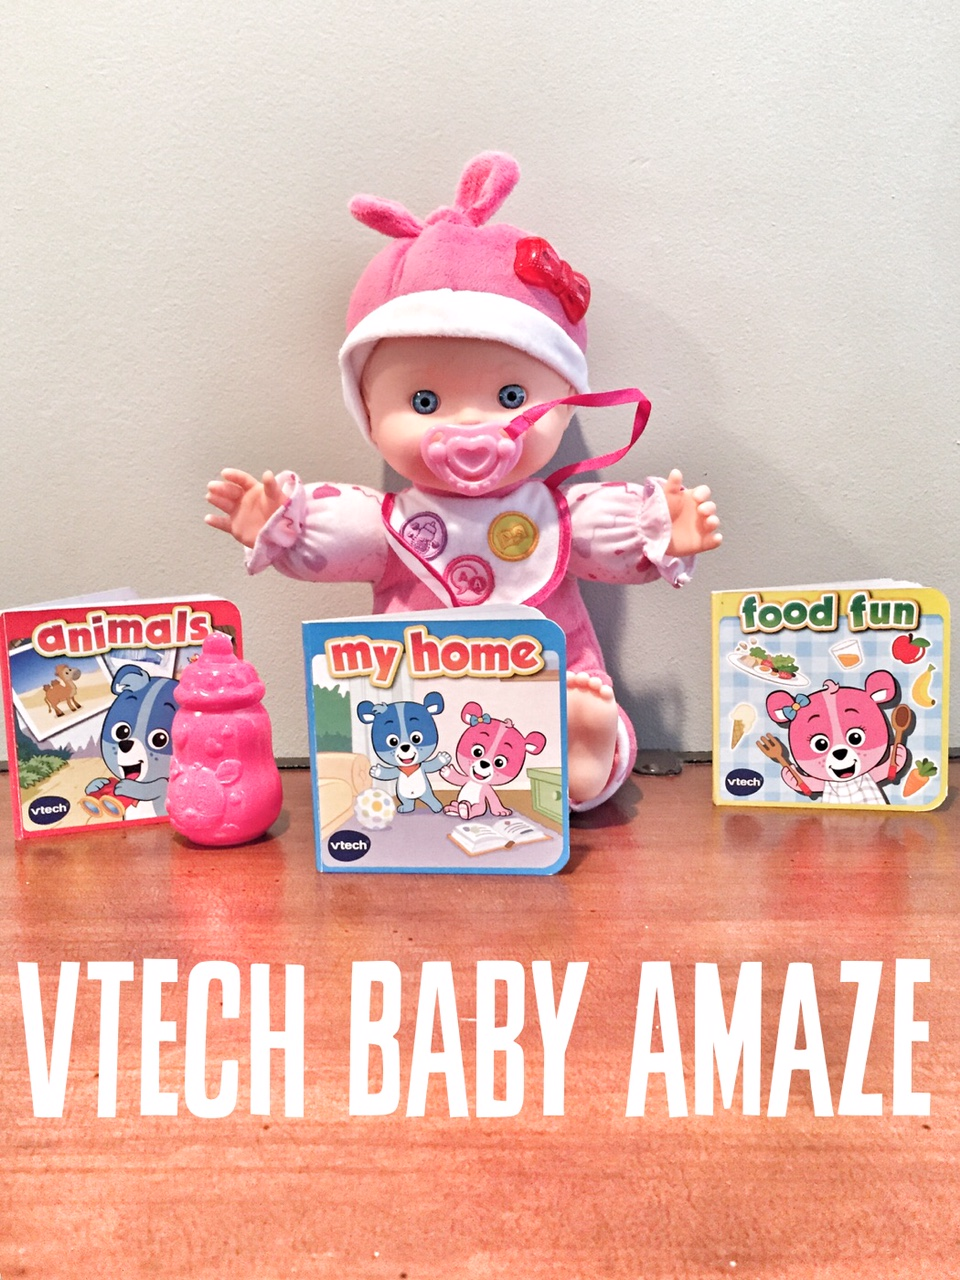 VTech Baby Amaze Learn to Talk & Read Baby Doll